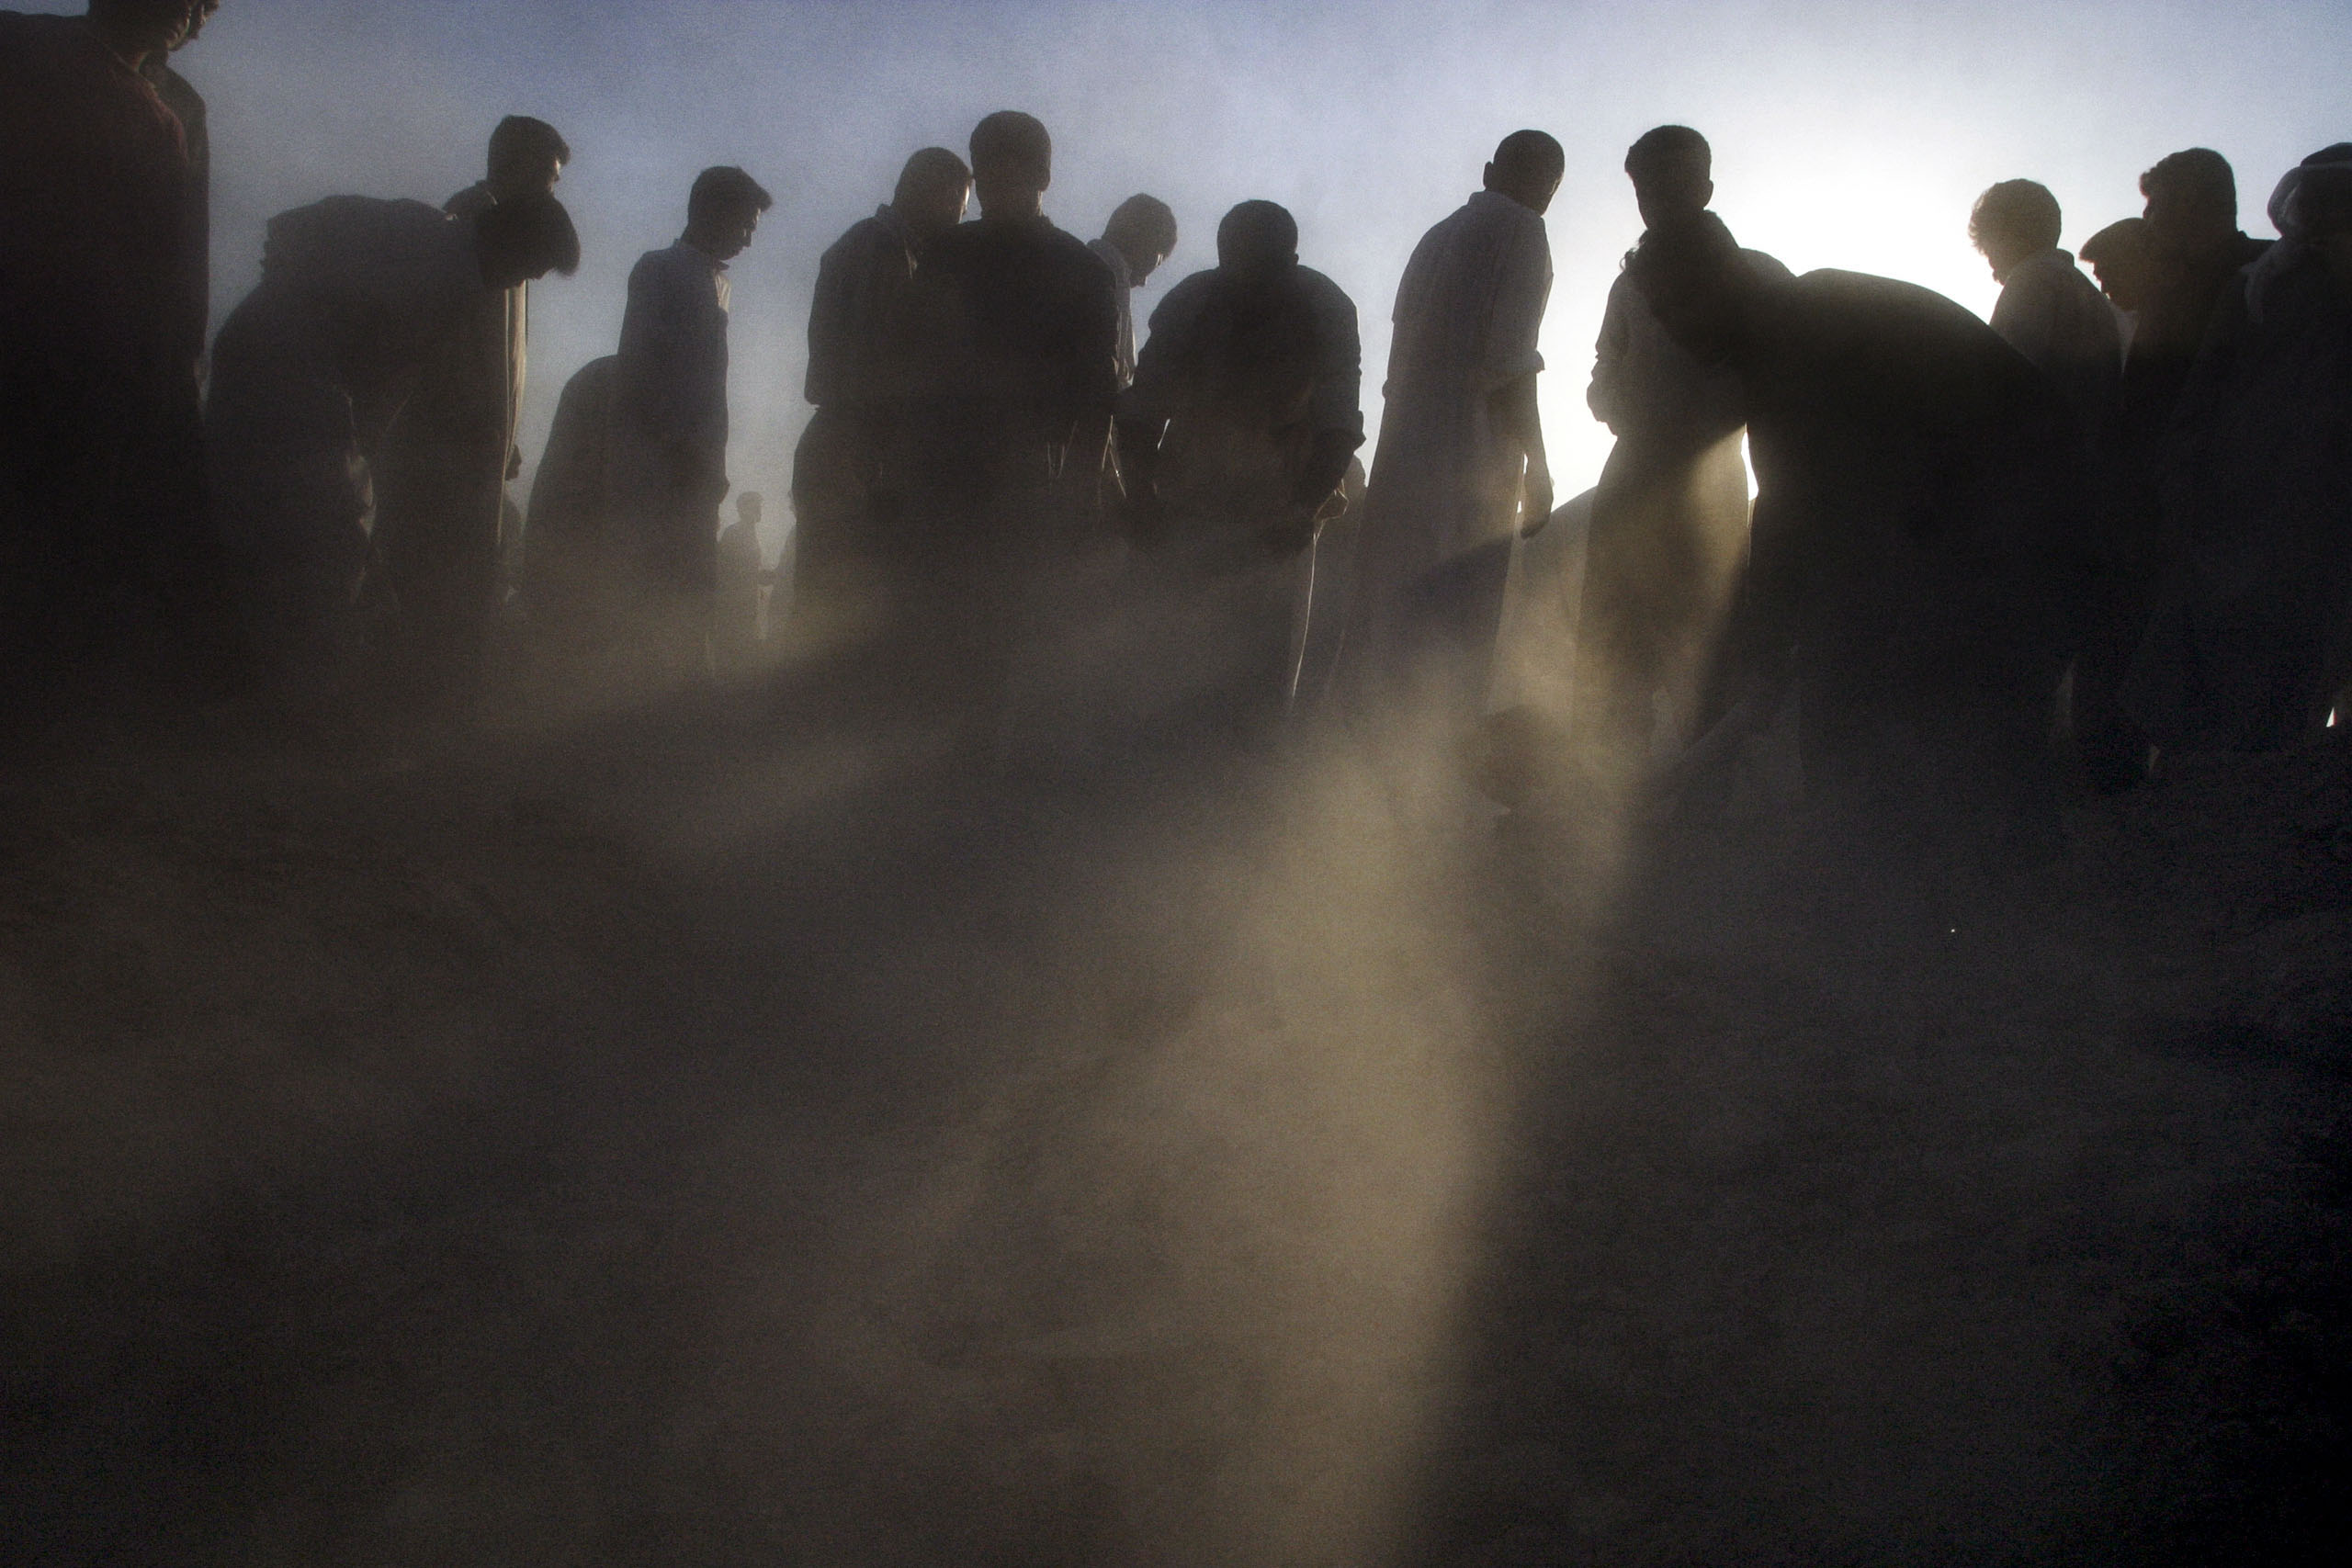 Iraqi mourners at a funeral in Fallujah, Iraq, for a man who was killed by American troops after they fired on a crowd of anti-American protesters, April 30, 2003.